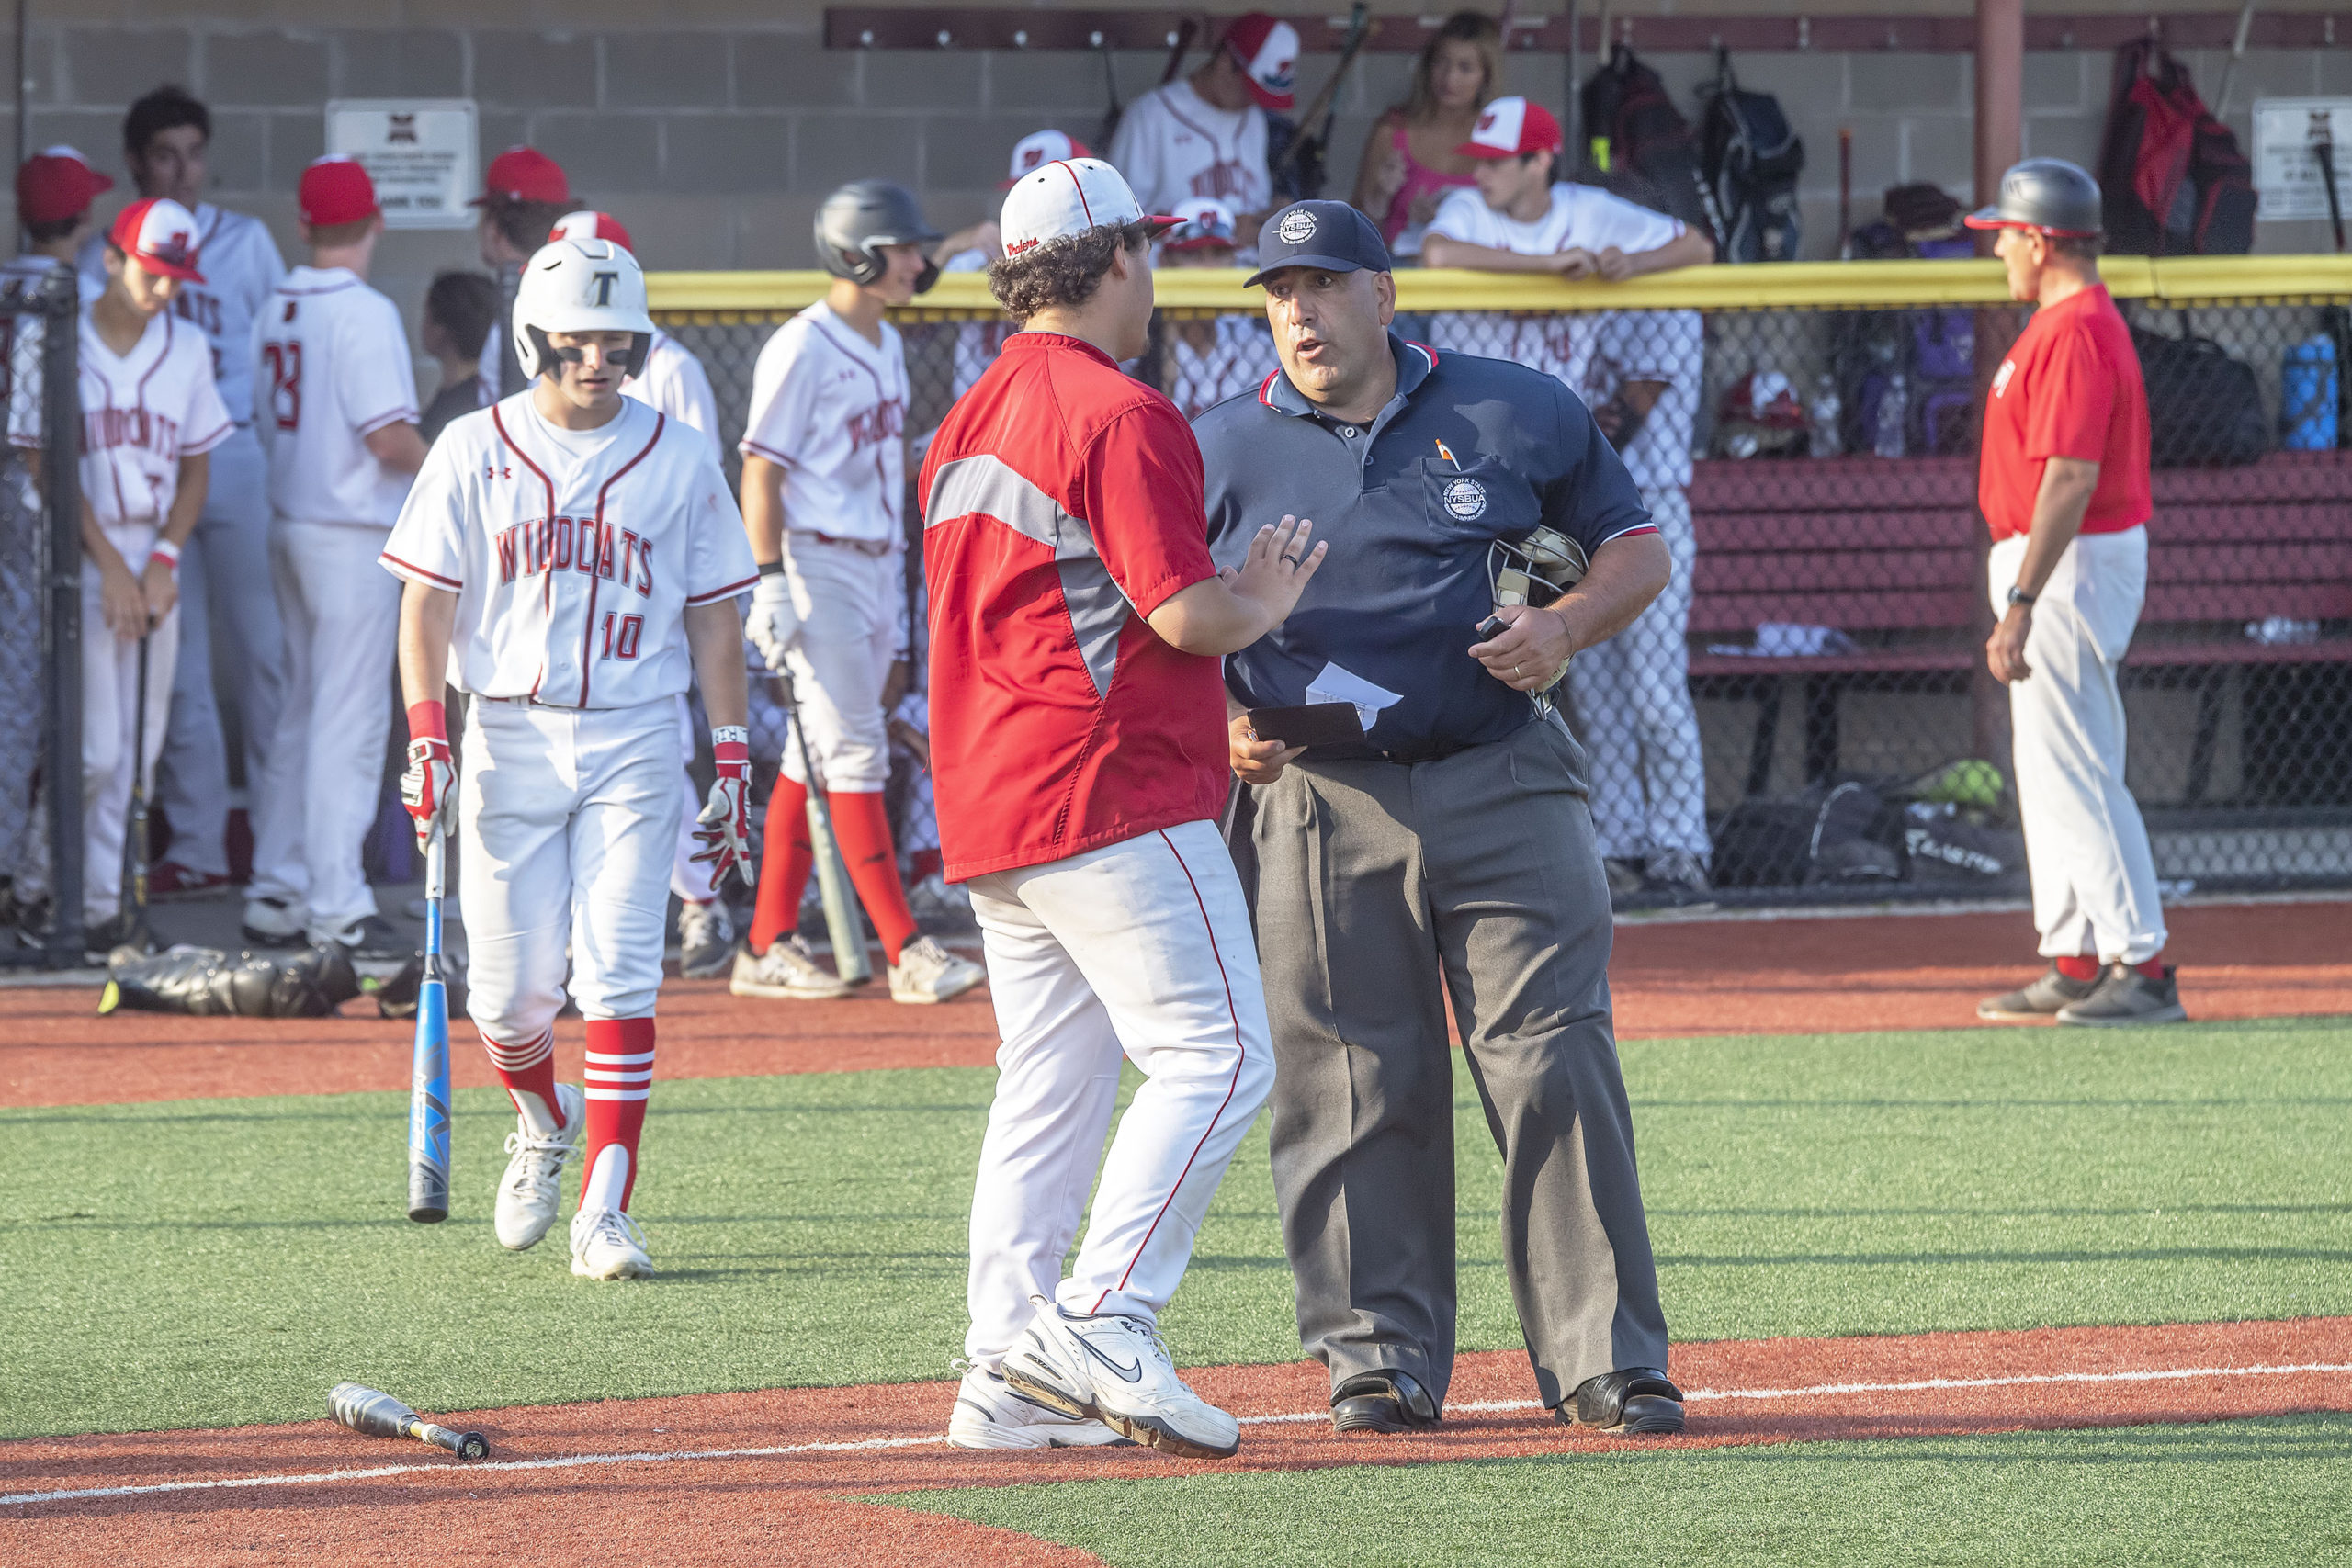 Pierson coach Tyler LaBorne talks with the home plate umpire regarding the ejection of a Wheatley player.